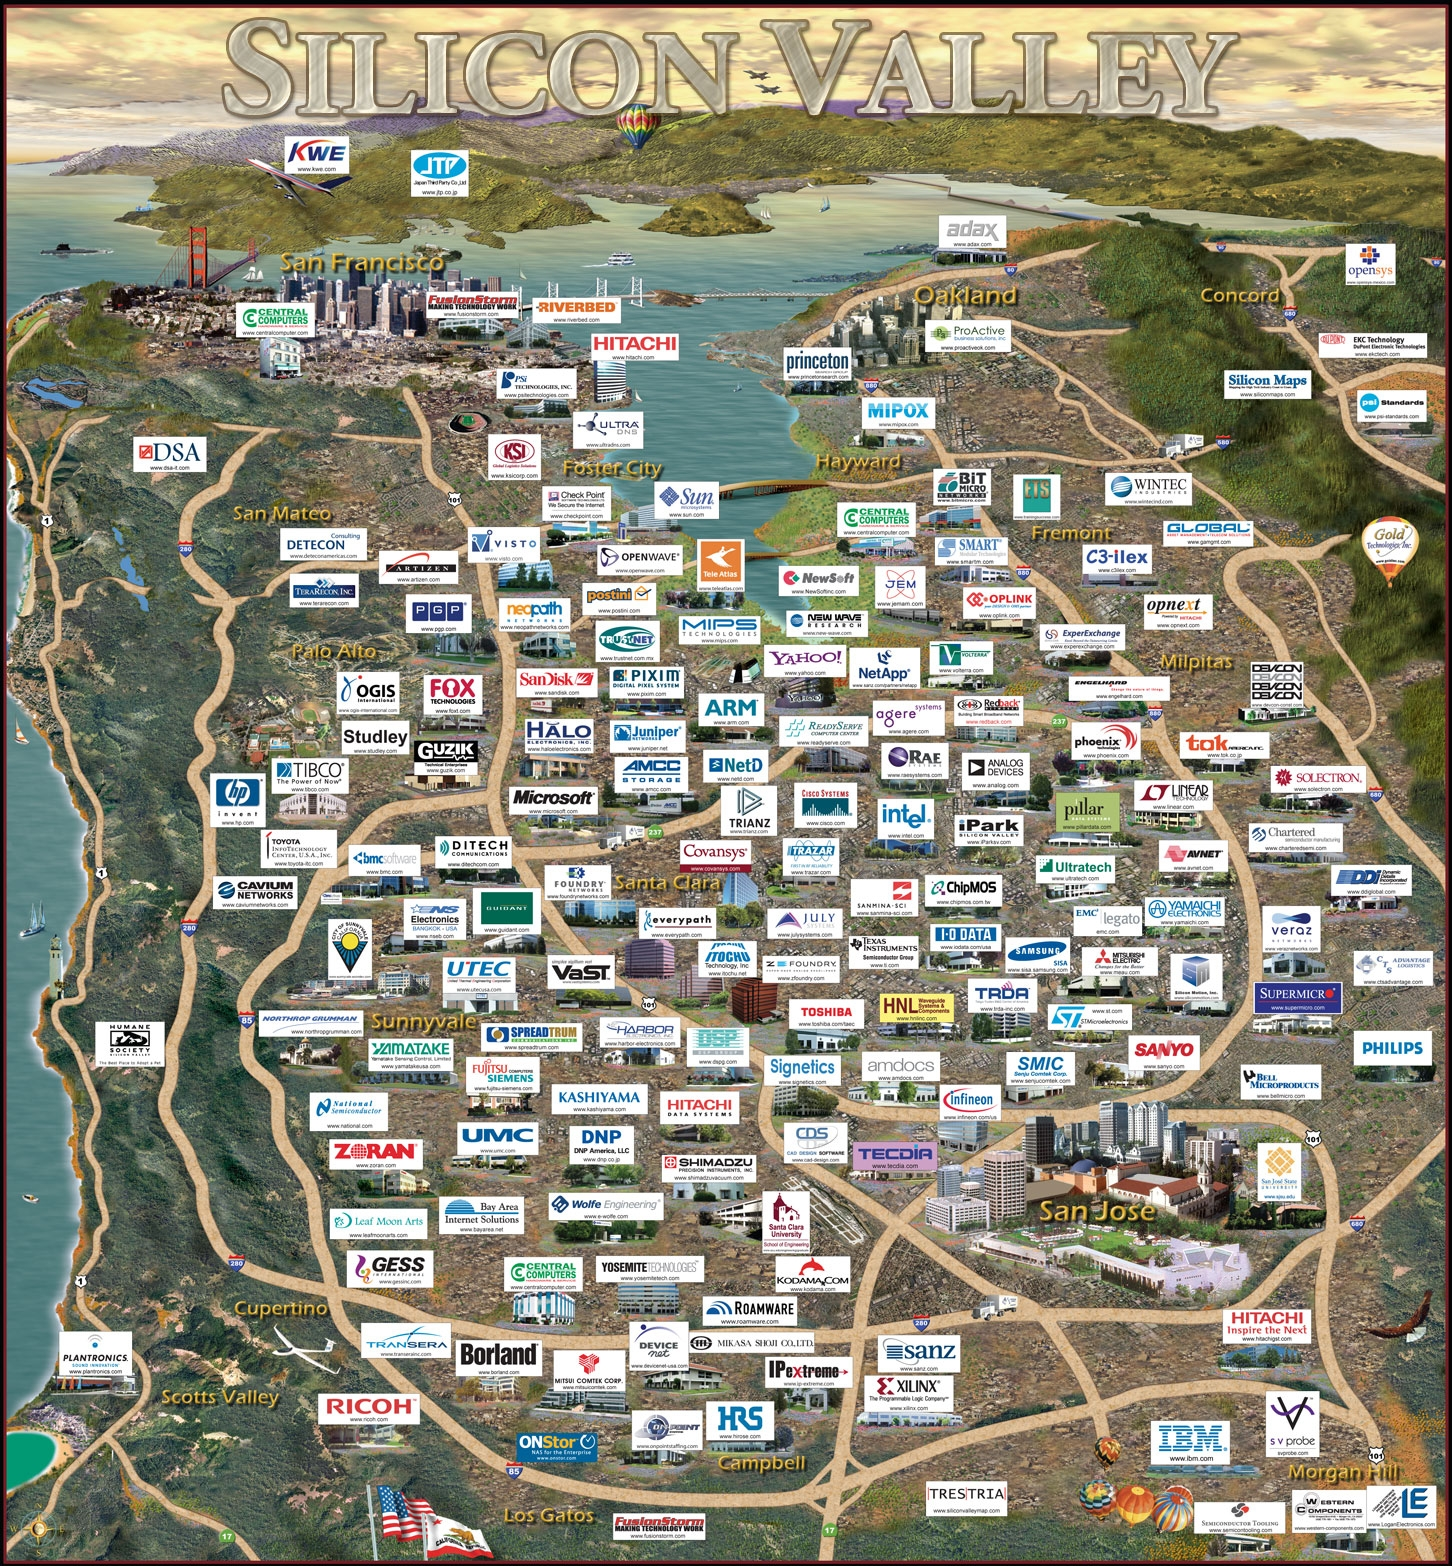 silicon valley: la mappa di tutte le start up presenti